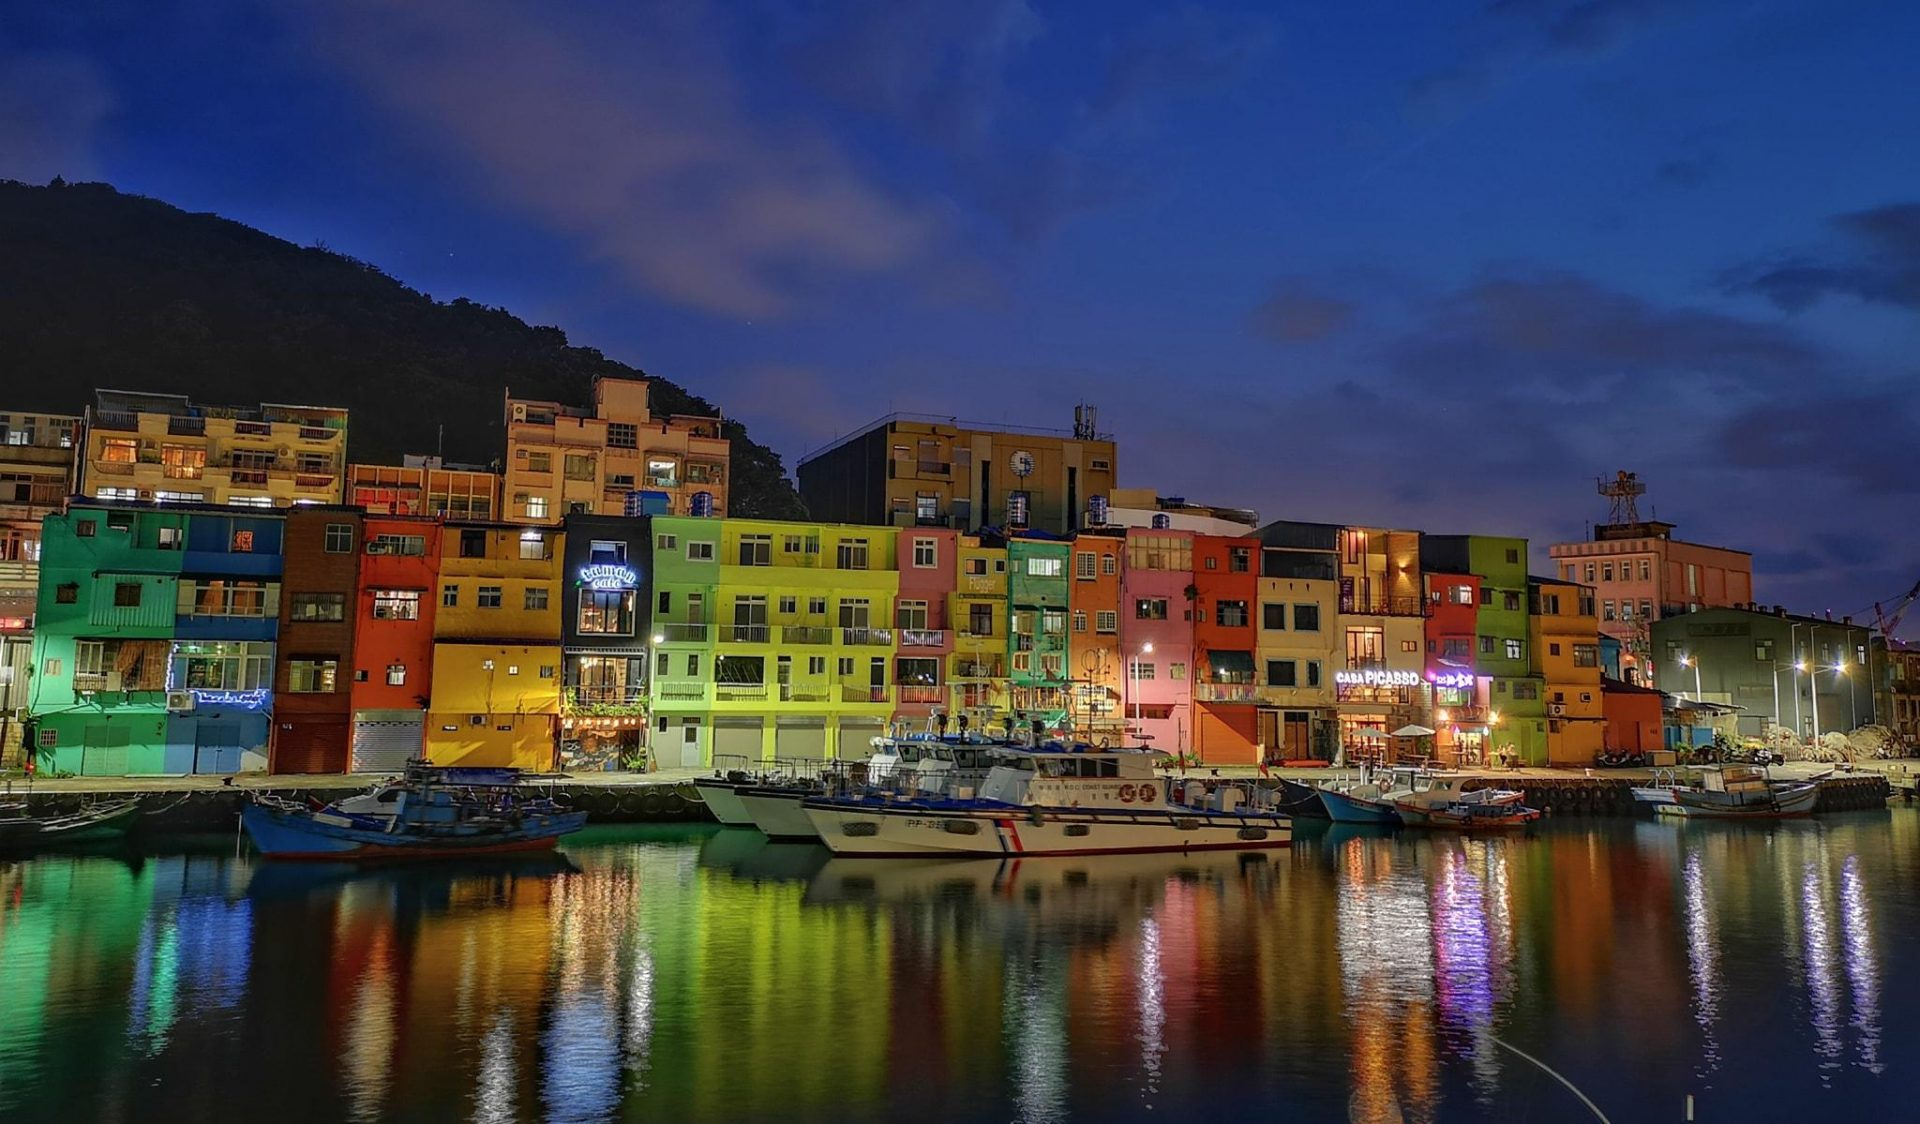 The Badouzih Fishing Village (八斗子魚村) in Keelung City. (Image: Courtesy of Xing Mei/Keelung City)